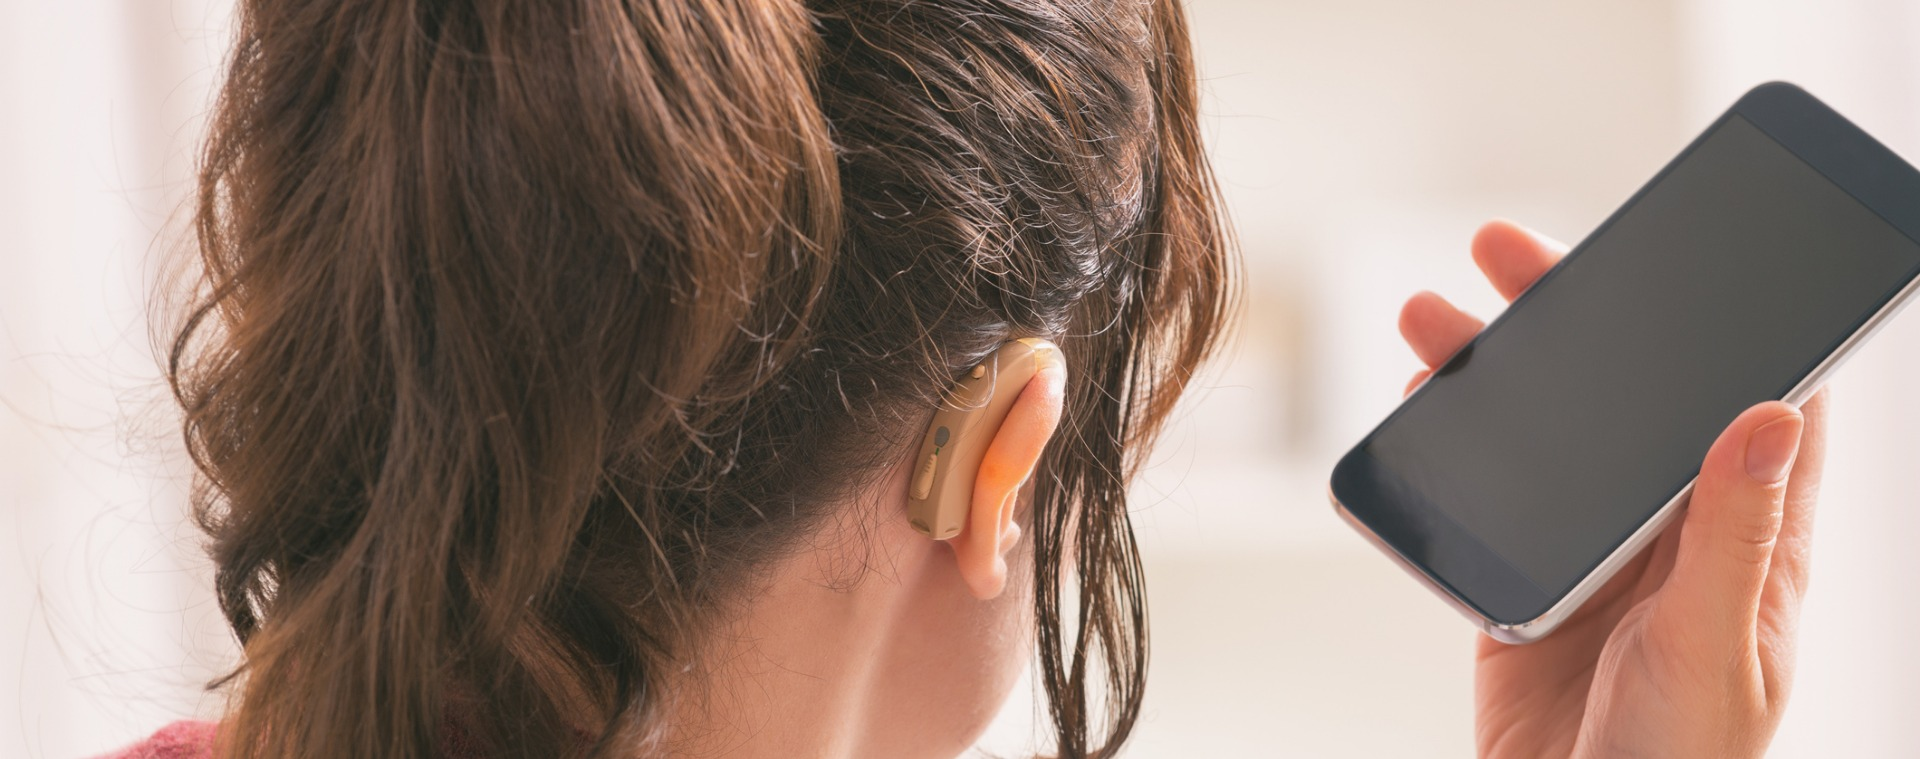 How to Integrate Connected Hearing Aids Into Your Daily Life